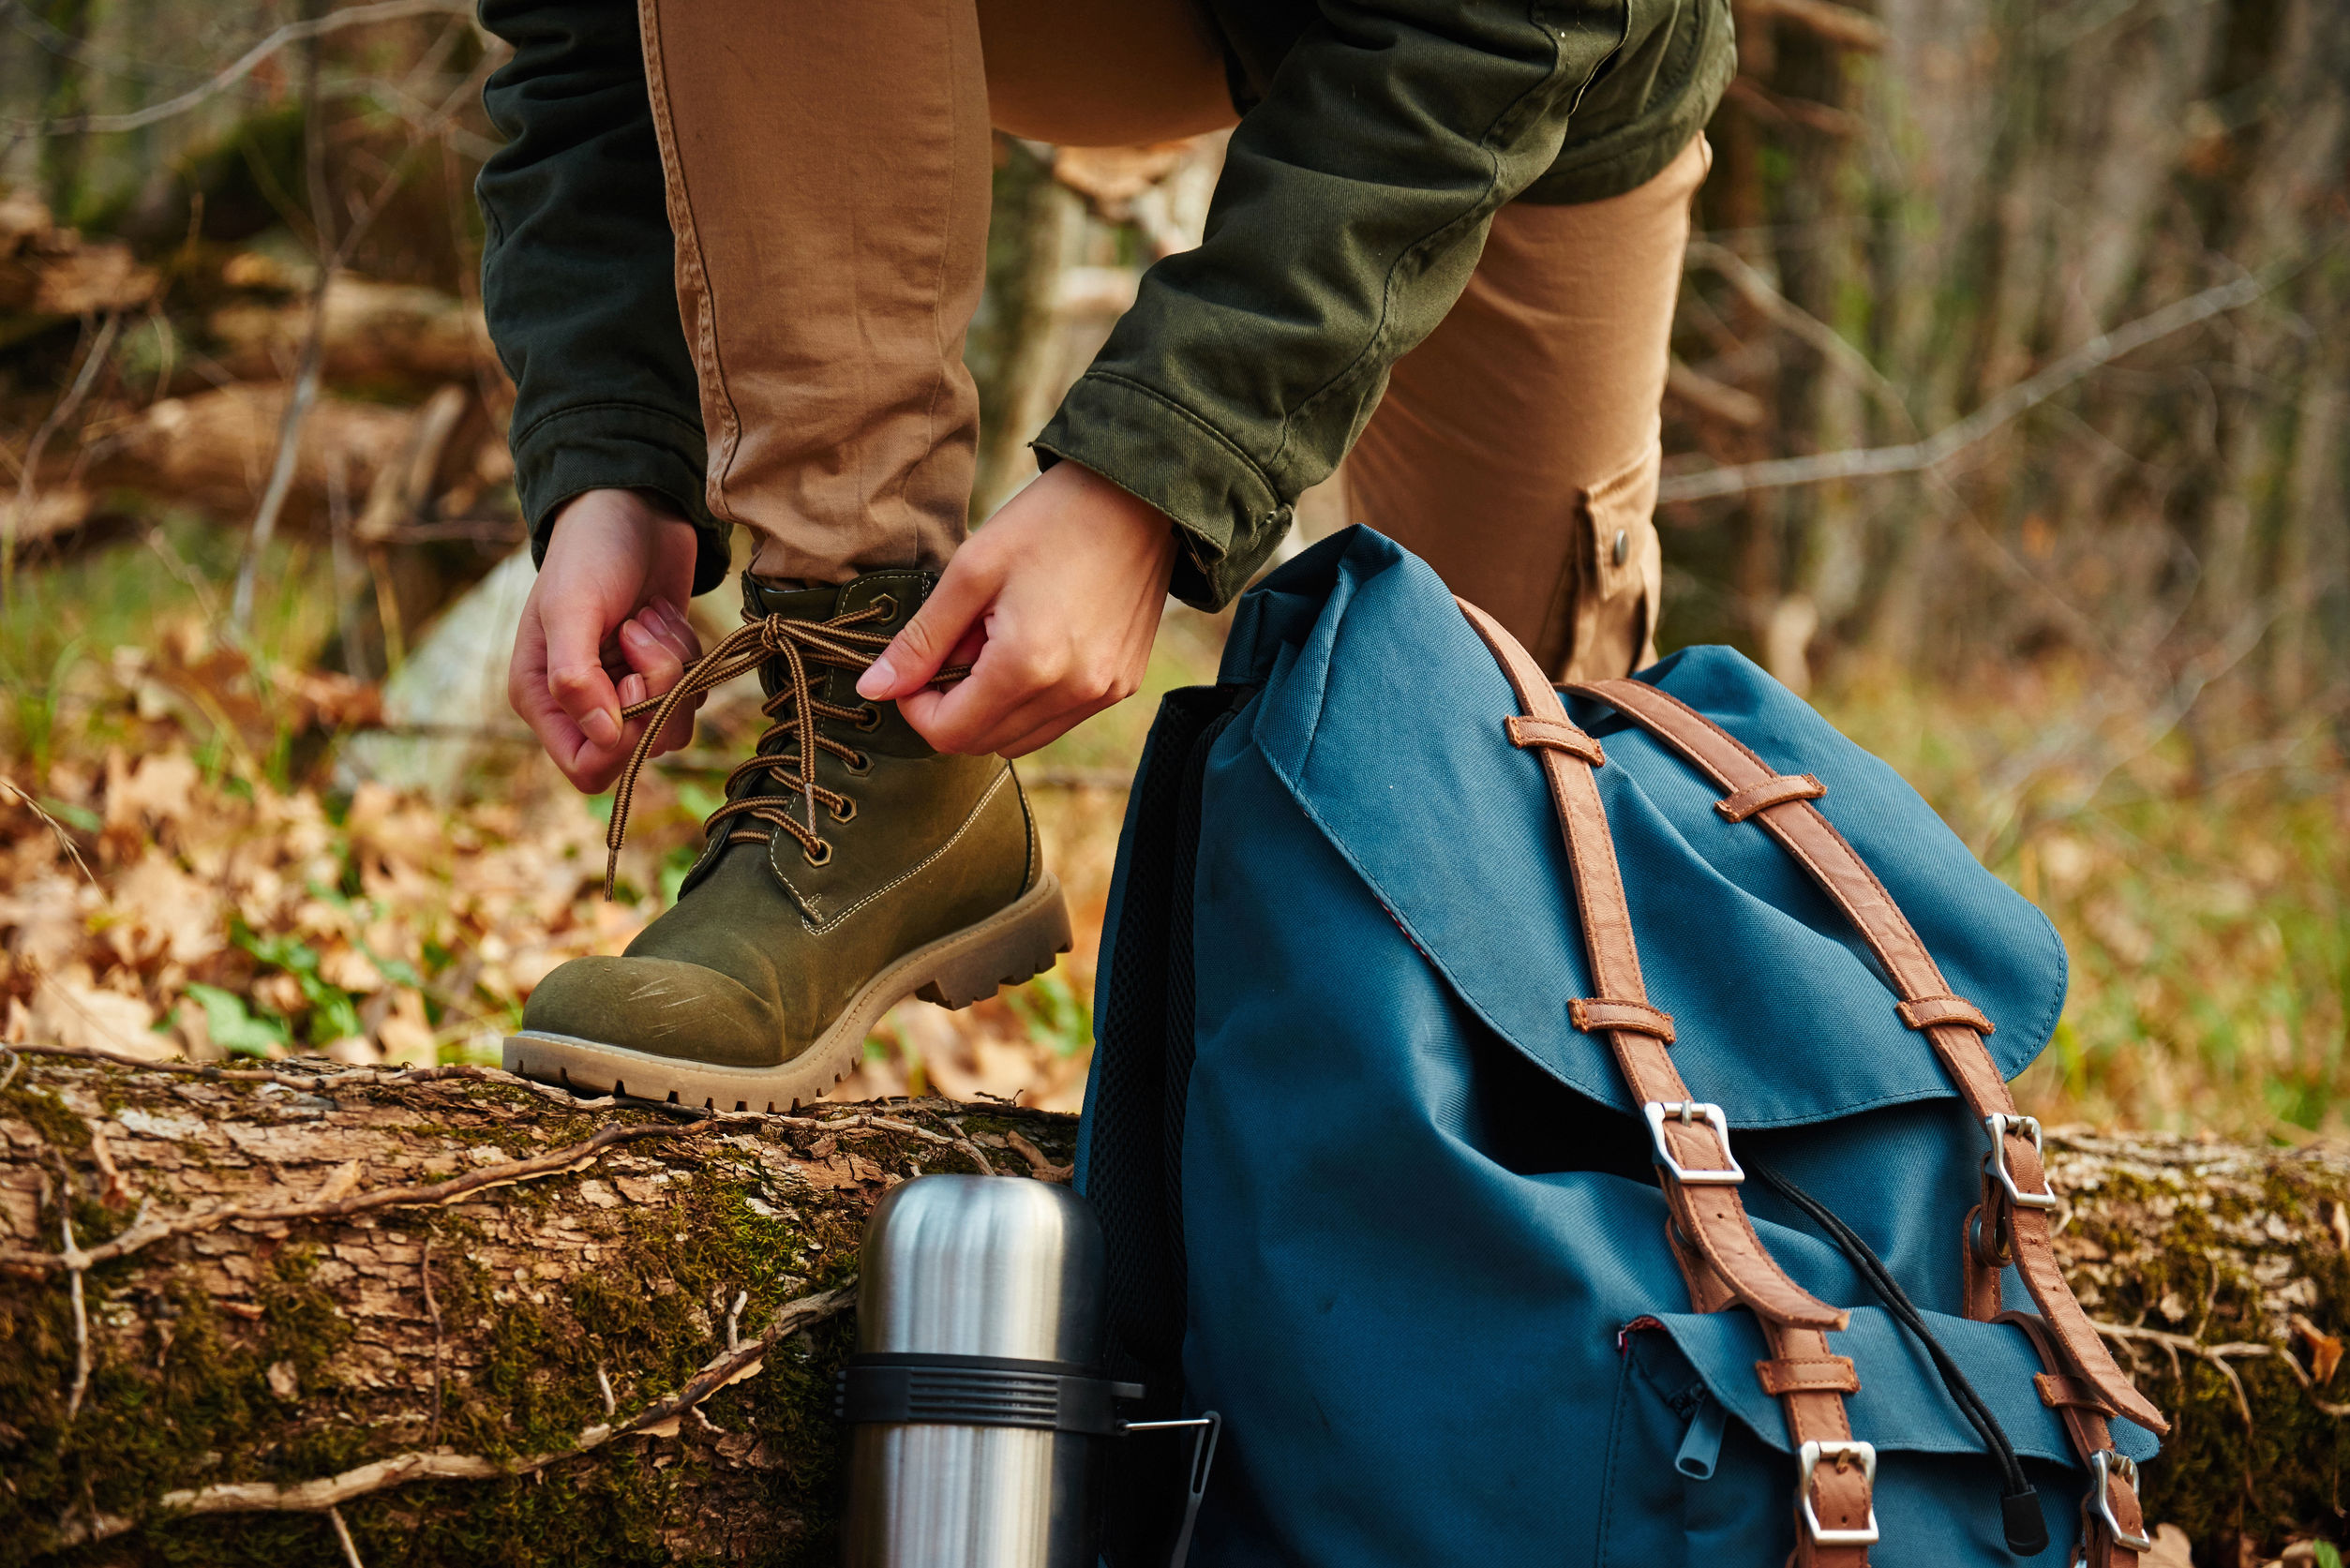 33853055 - female hiker tying shoelaces outdoors in autumn forest, near thermos and backpack. view of legs. hiking and leisure theme